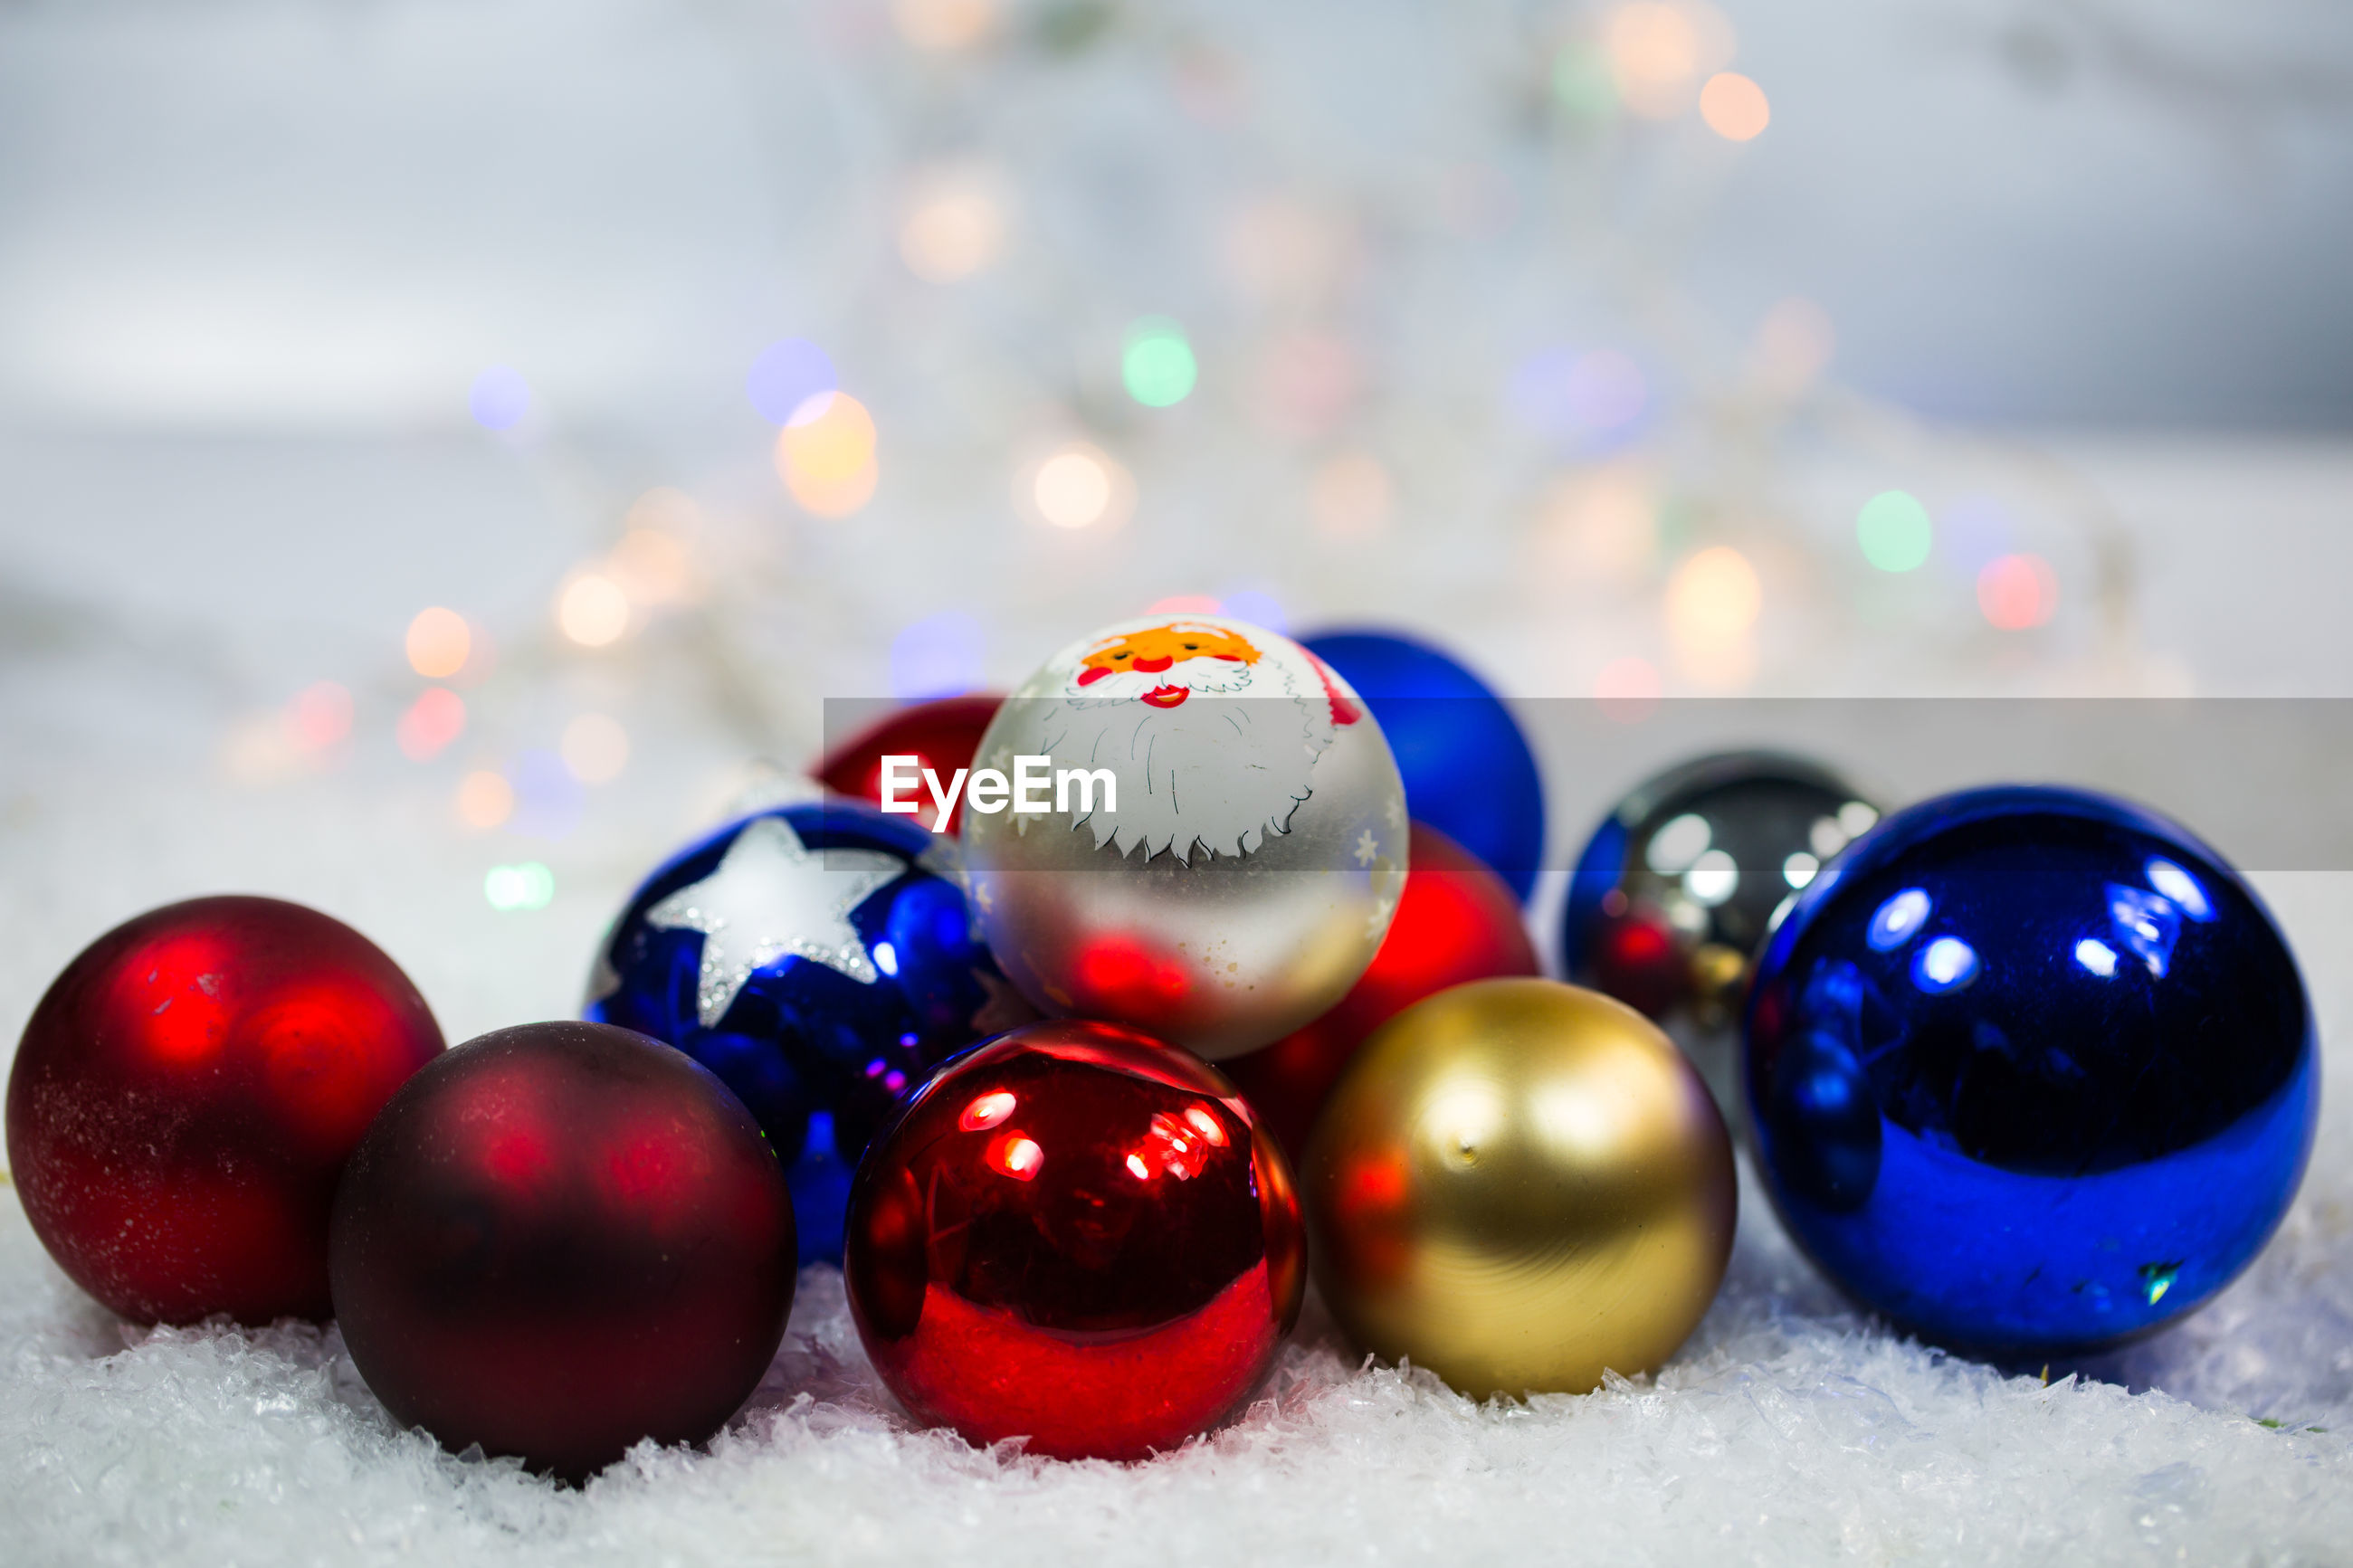 multi colored, celebration, sphere, close-up, no people, holiday, snow, winter, ball, shiny, cold temperature, selective focus, christmas, indoors, focus on foreground, still life, decoration, shape, christmas ornament